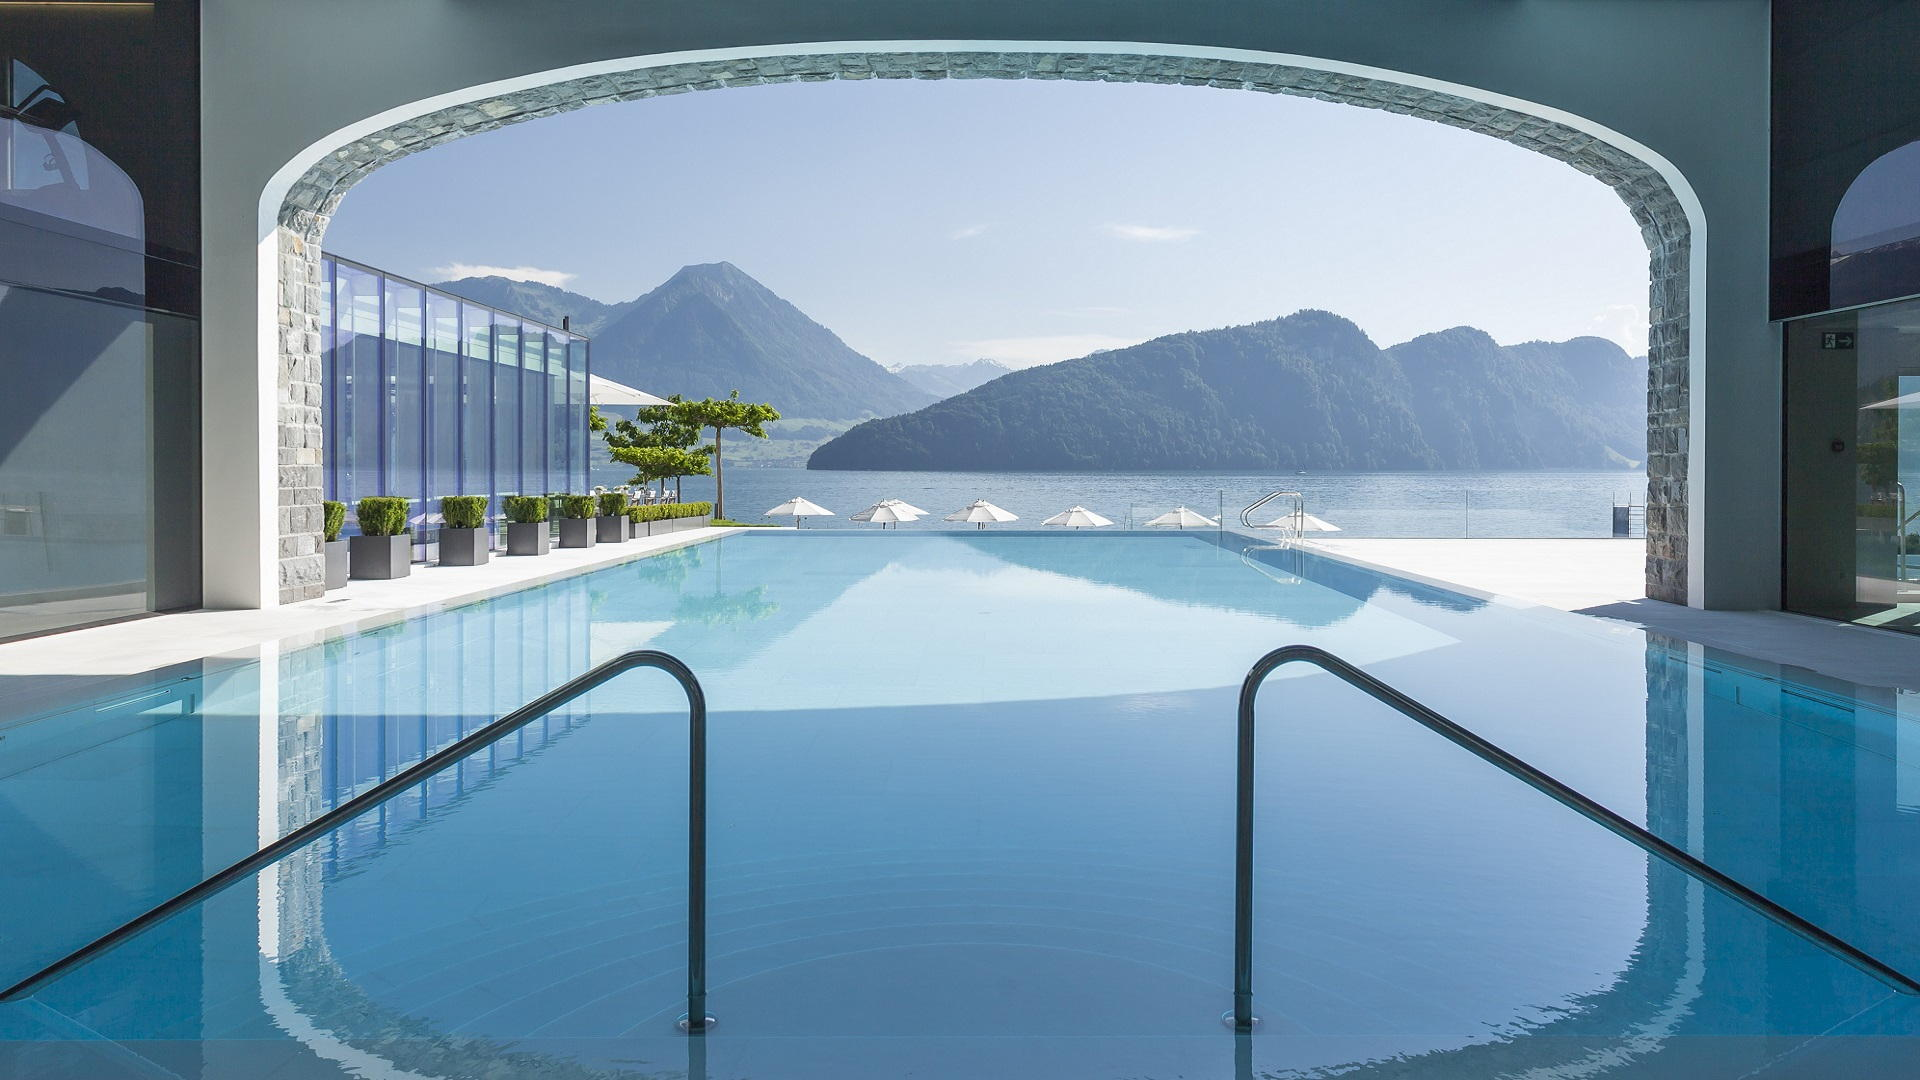 Luxury Wellness Hotels In Europe For Spa Retreats Medical Treatment Programmes